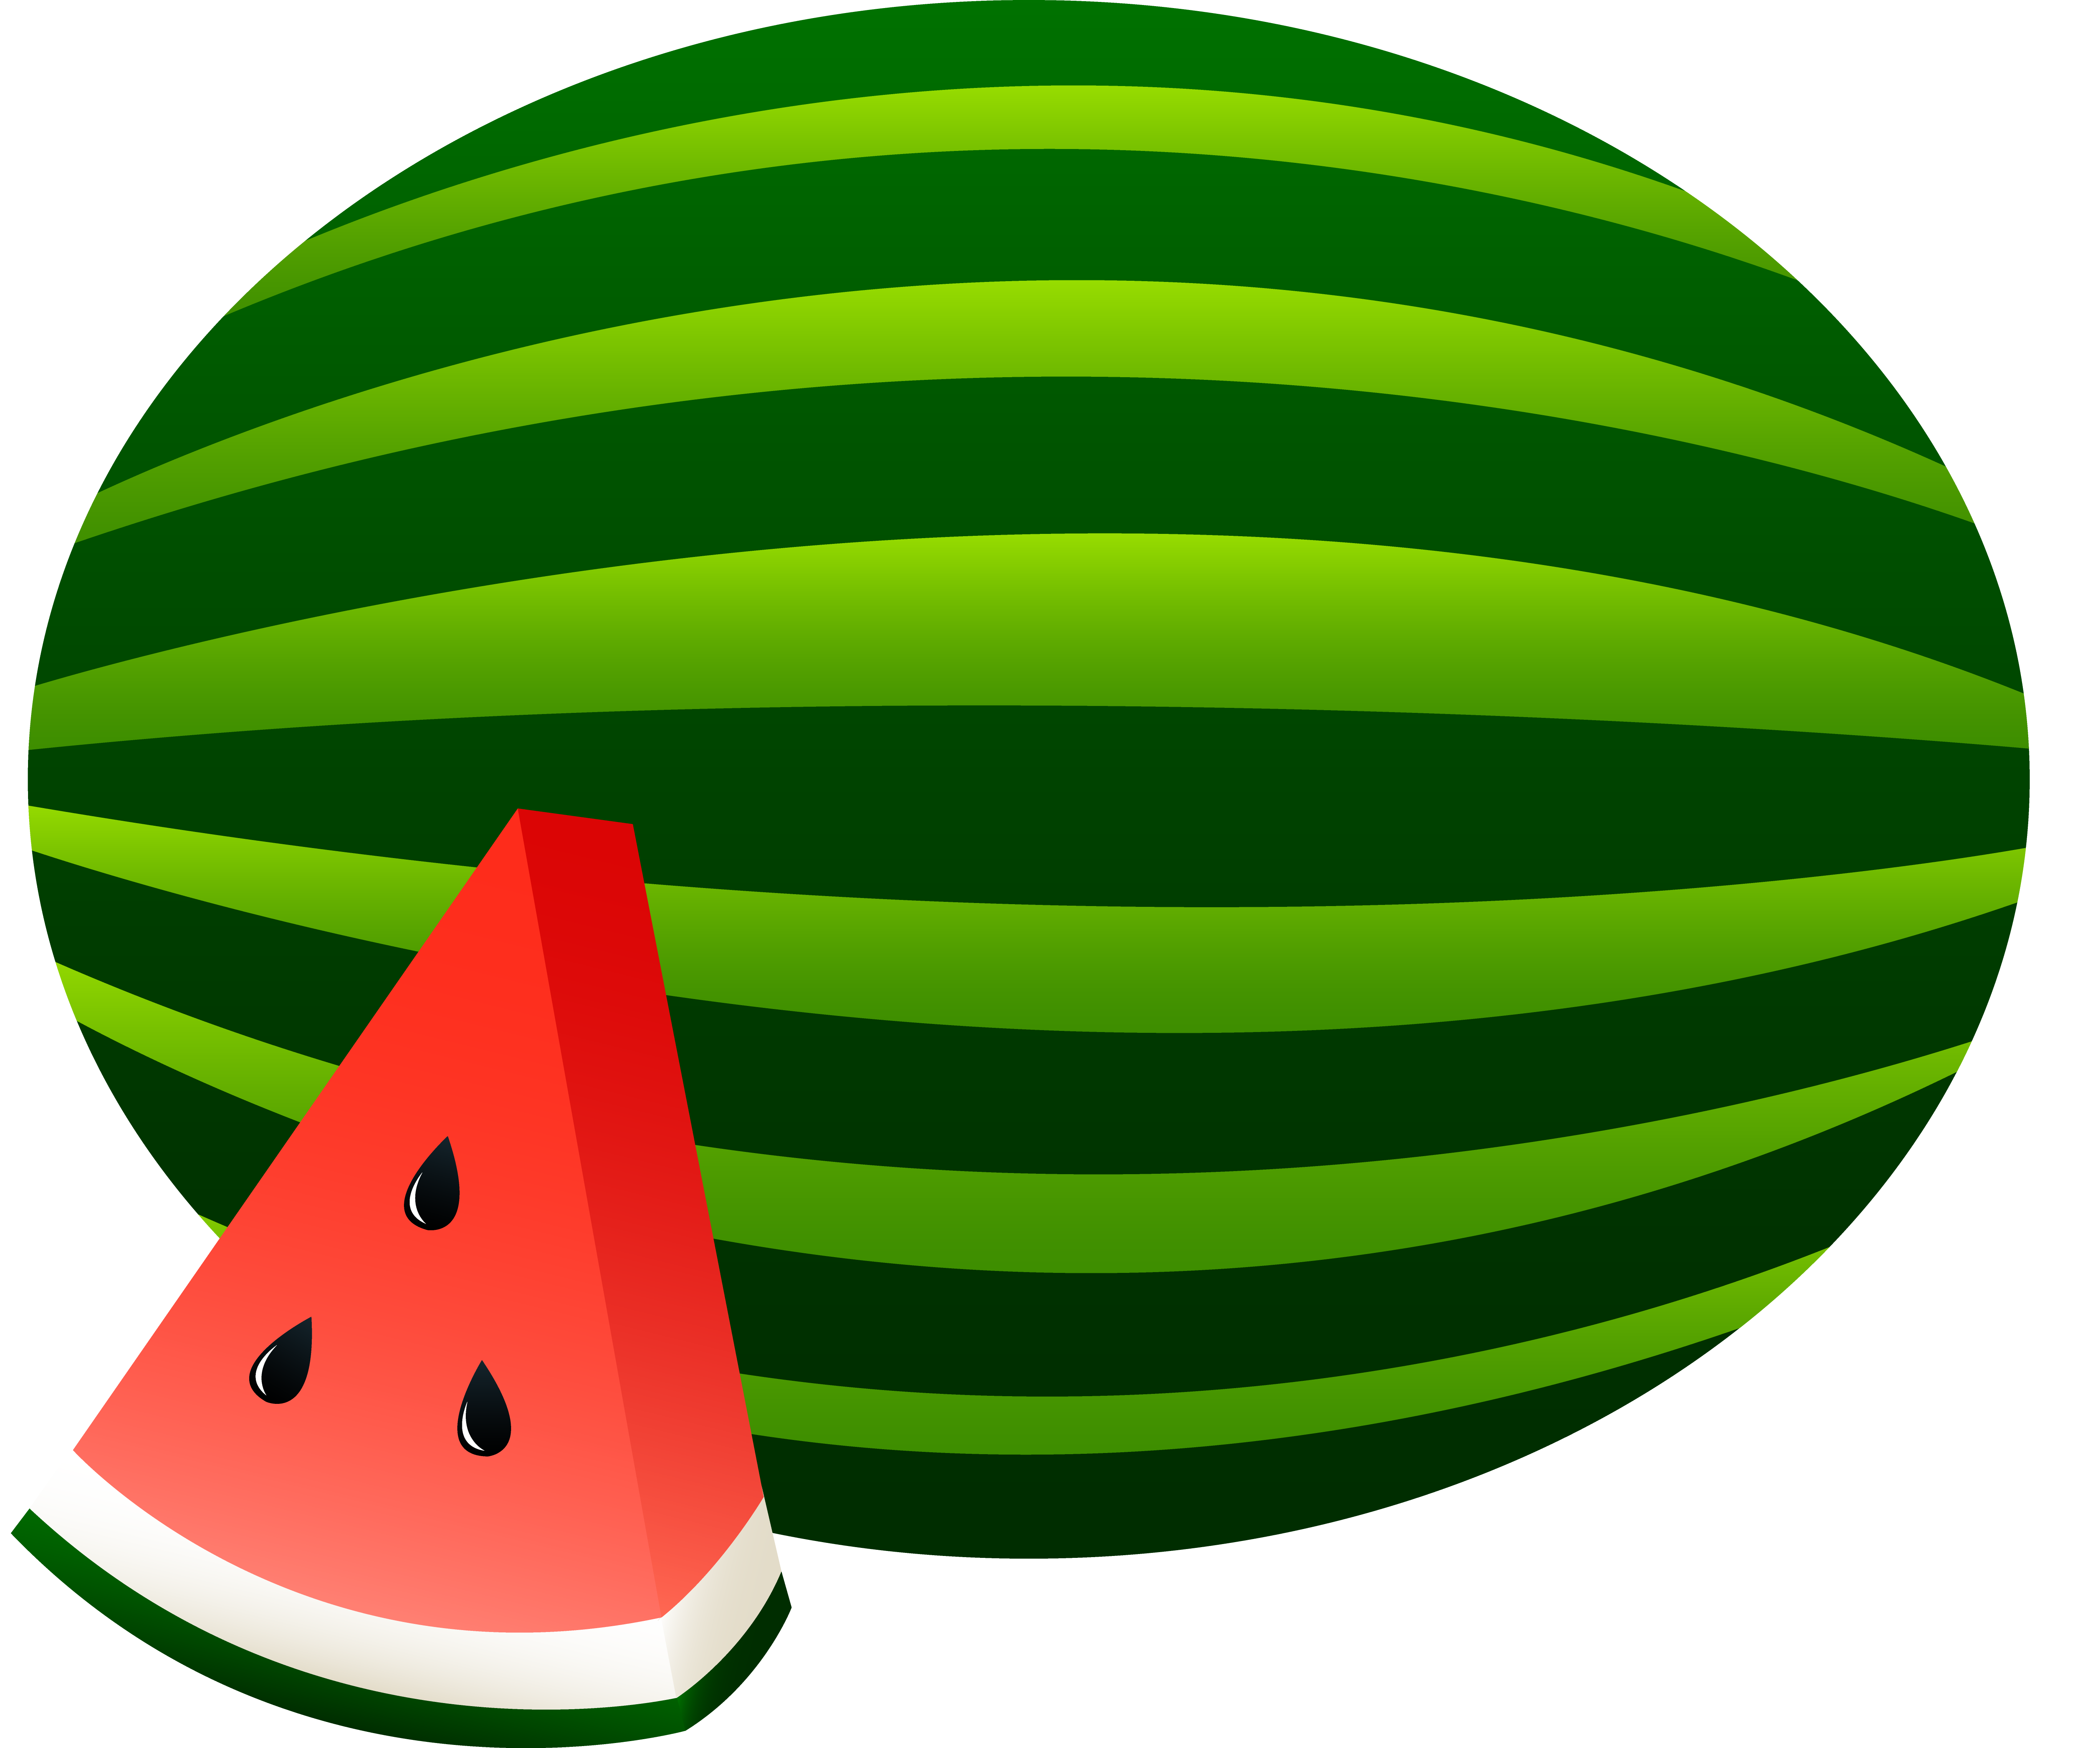 Watermelon clipart whole. Panda free images wholewatermelonclipart